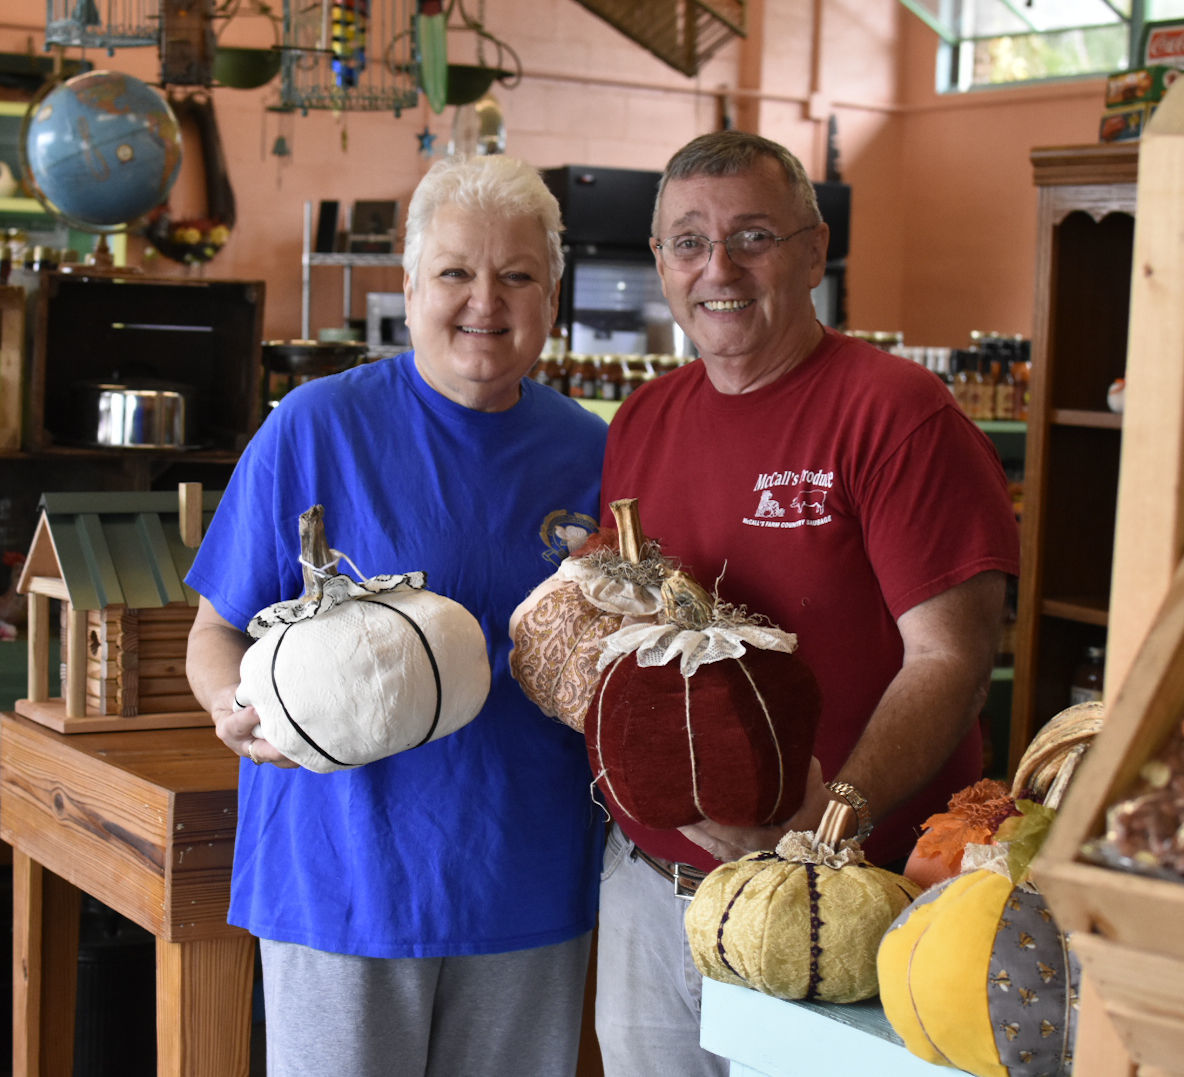 McCall's Produce Market features Halloween crafts